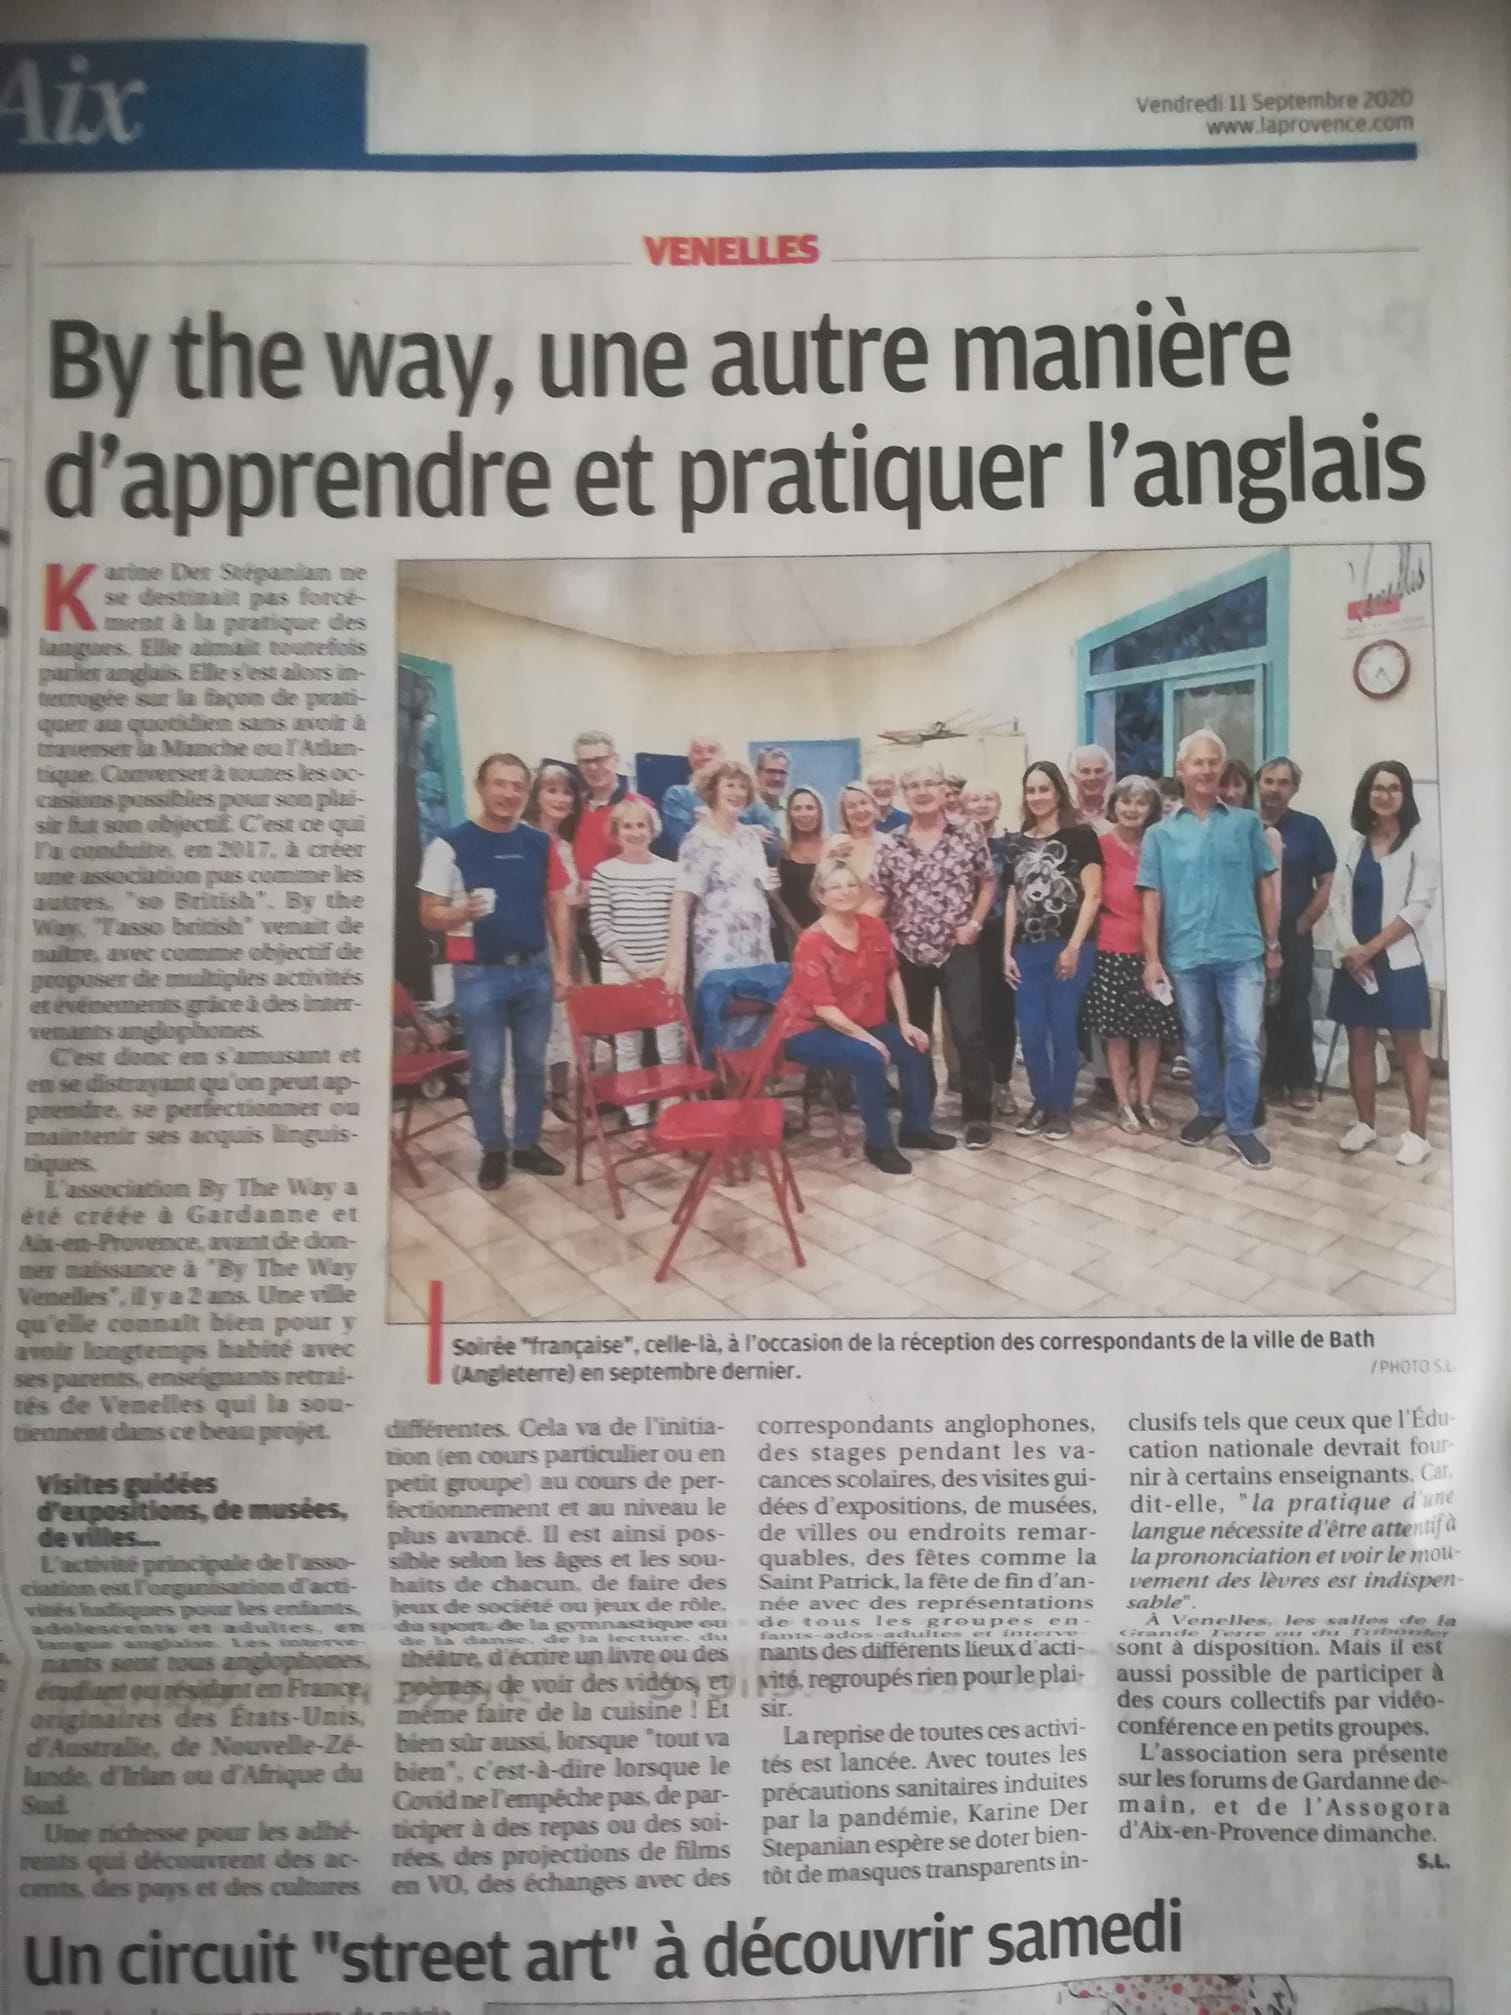 By The Way Venelles dans La Provence